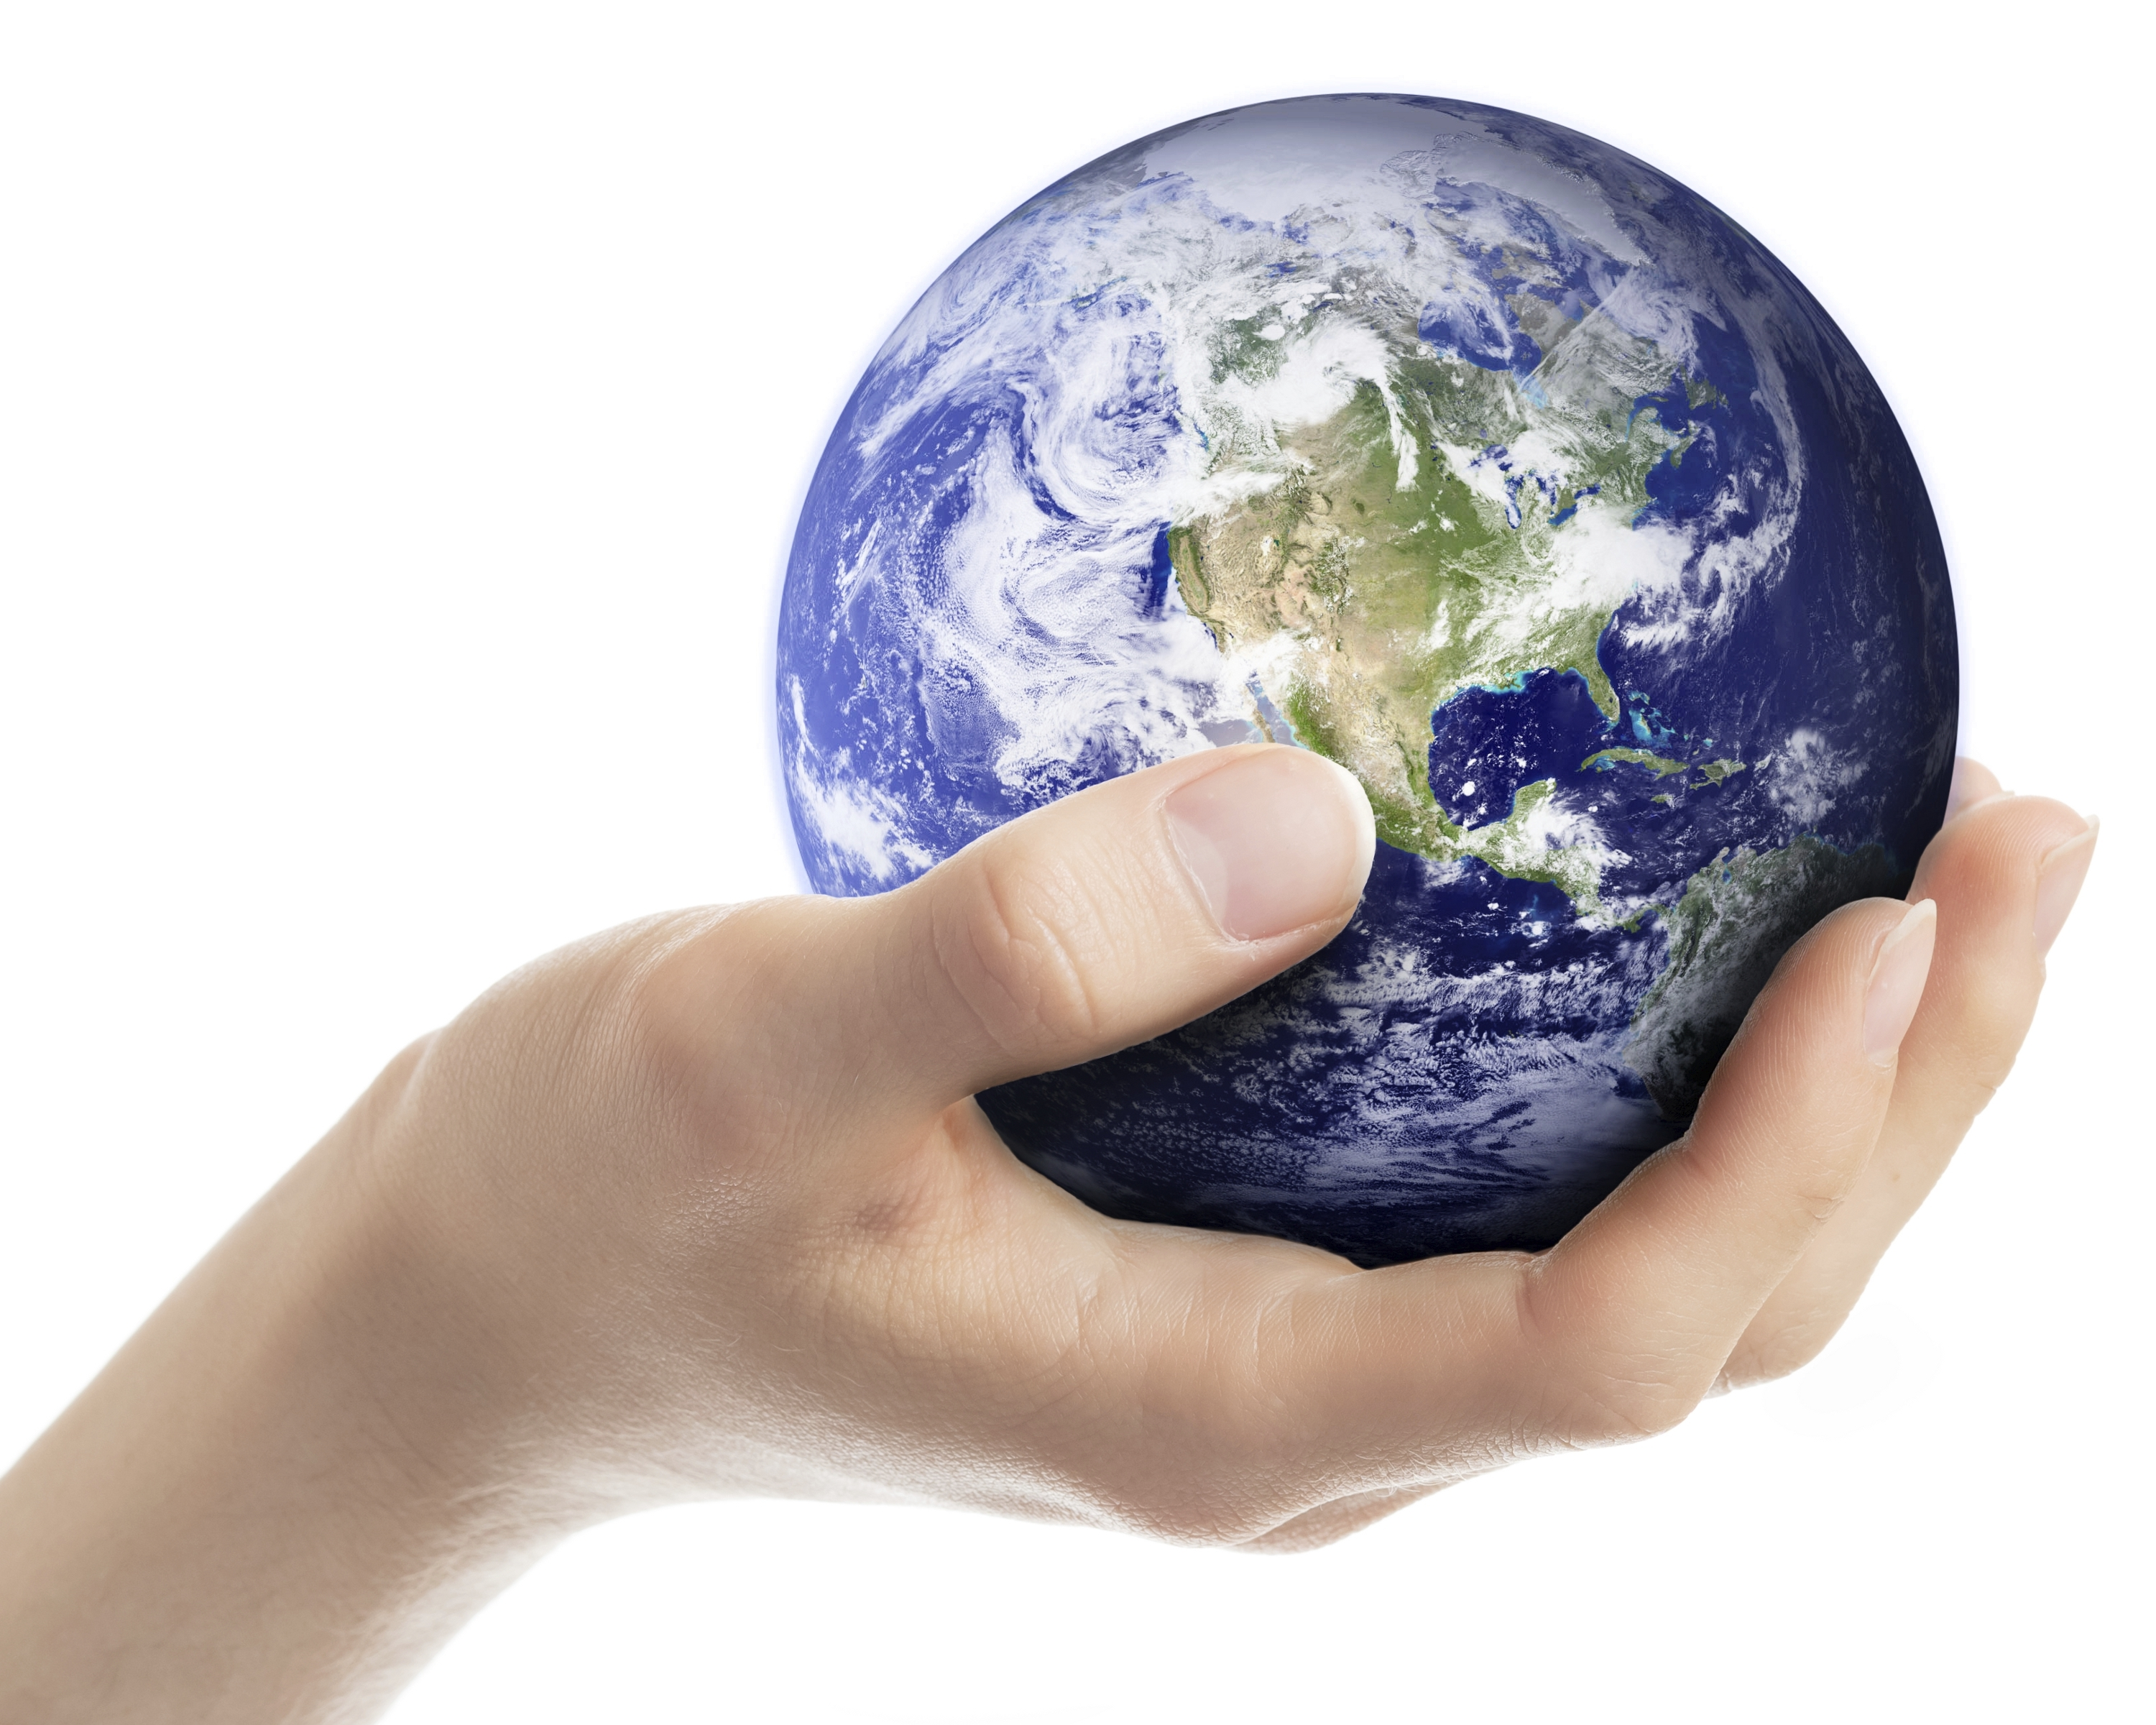 A hand holding a small model of earth. (stock image)